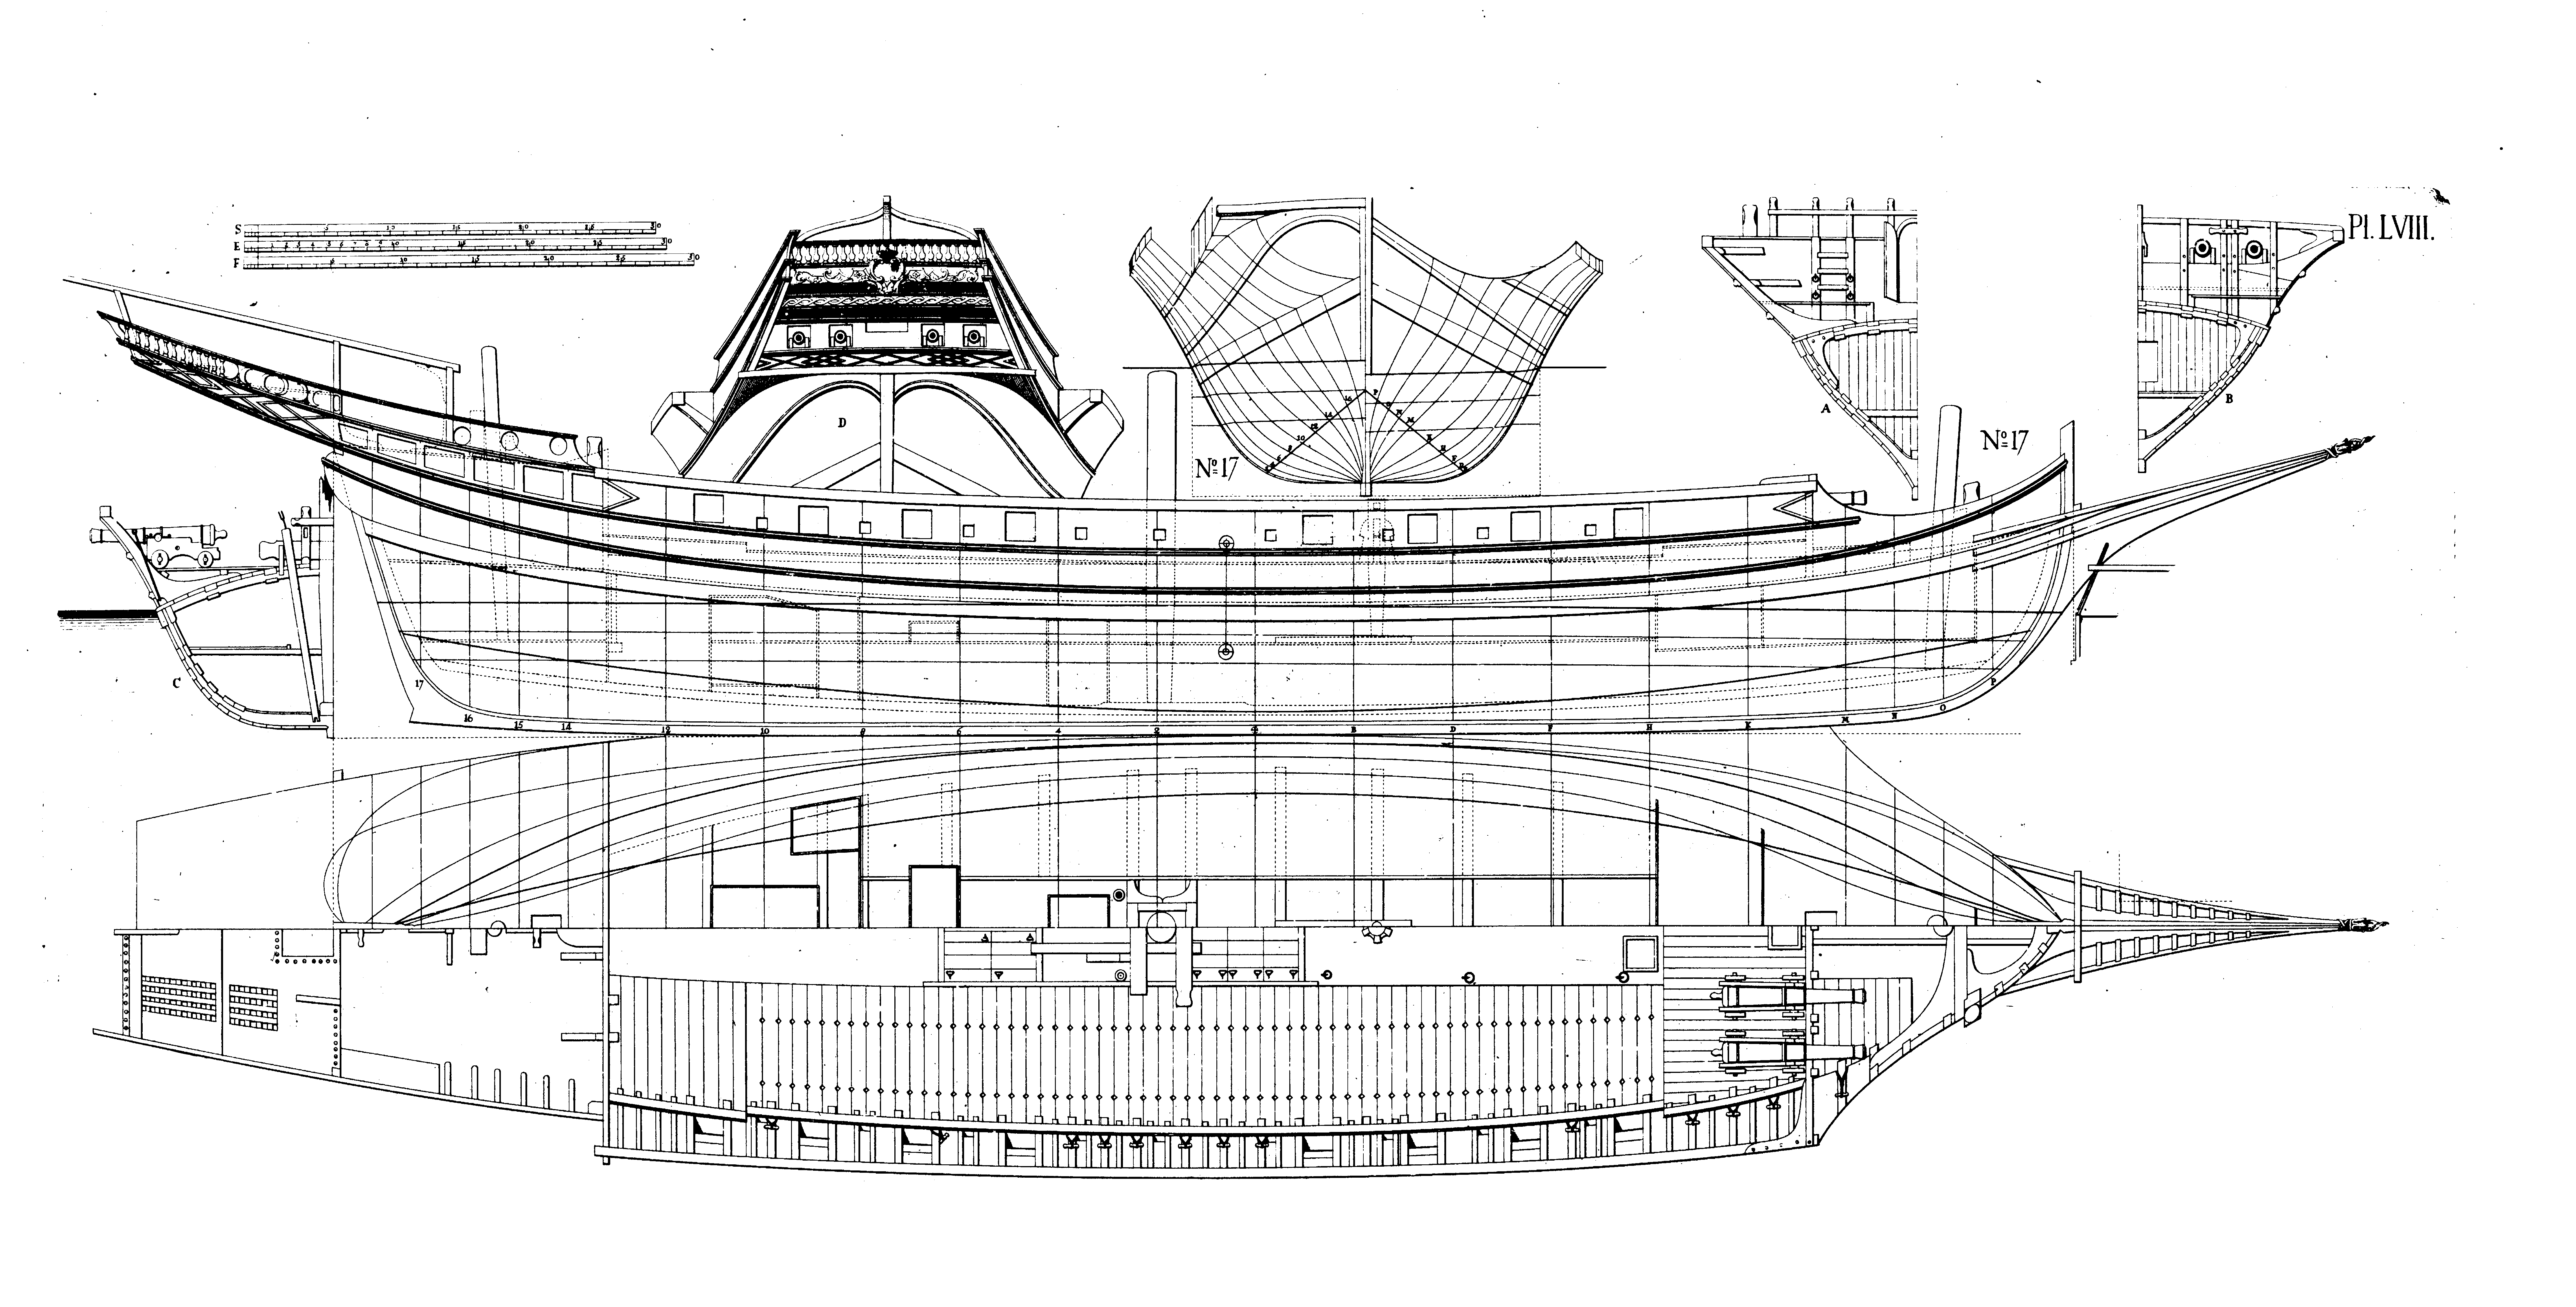 Tmp Your Pirate Ships Design From Which Decade Topic